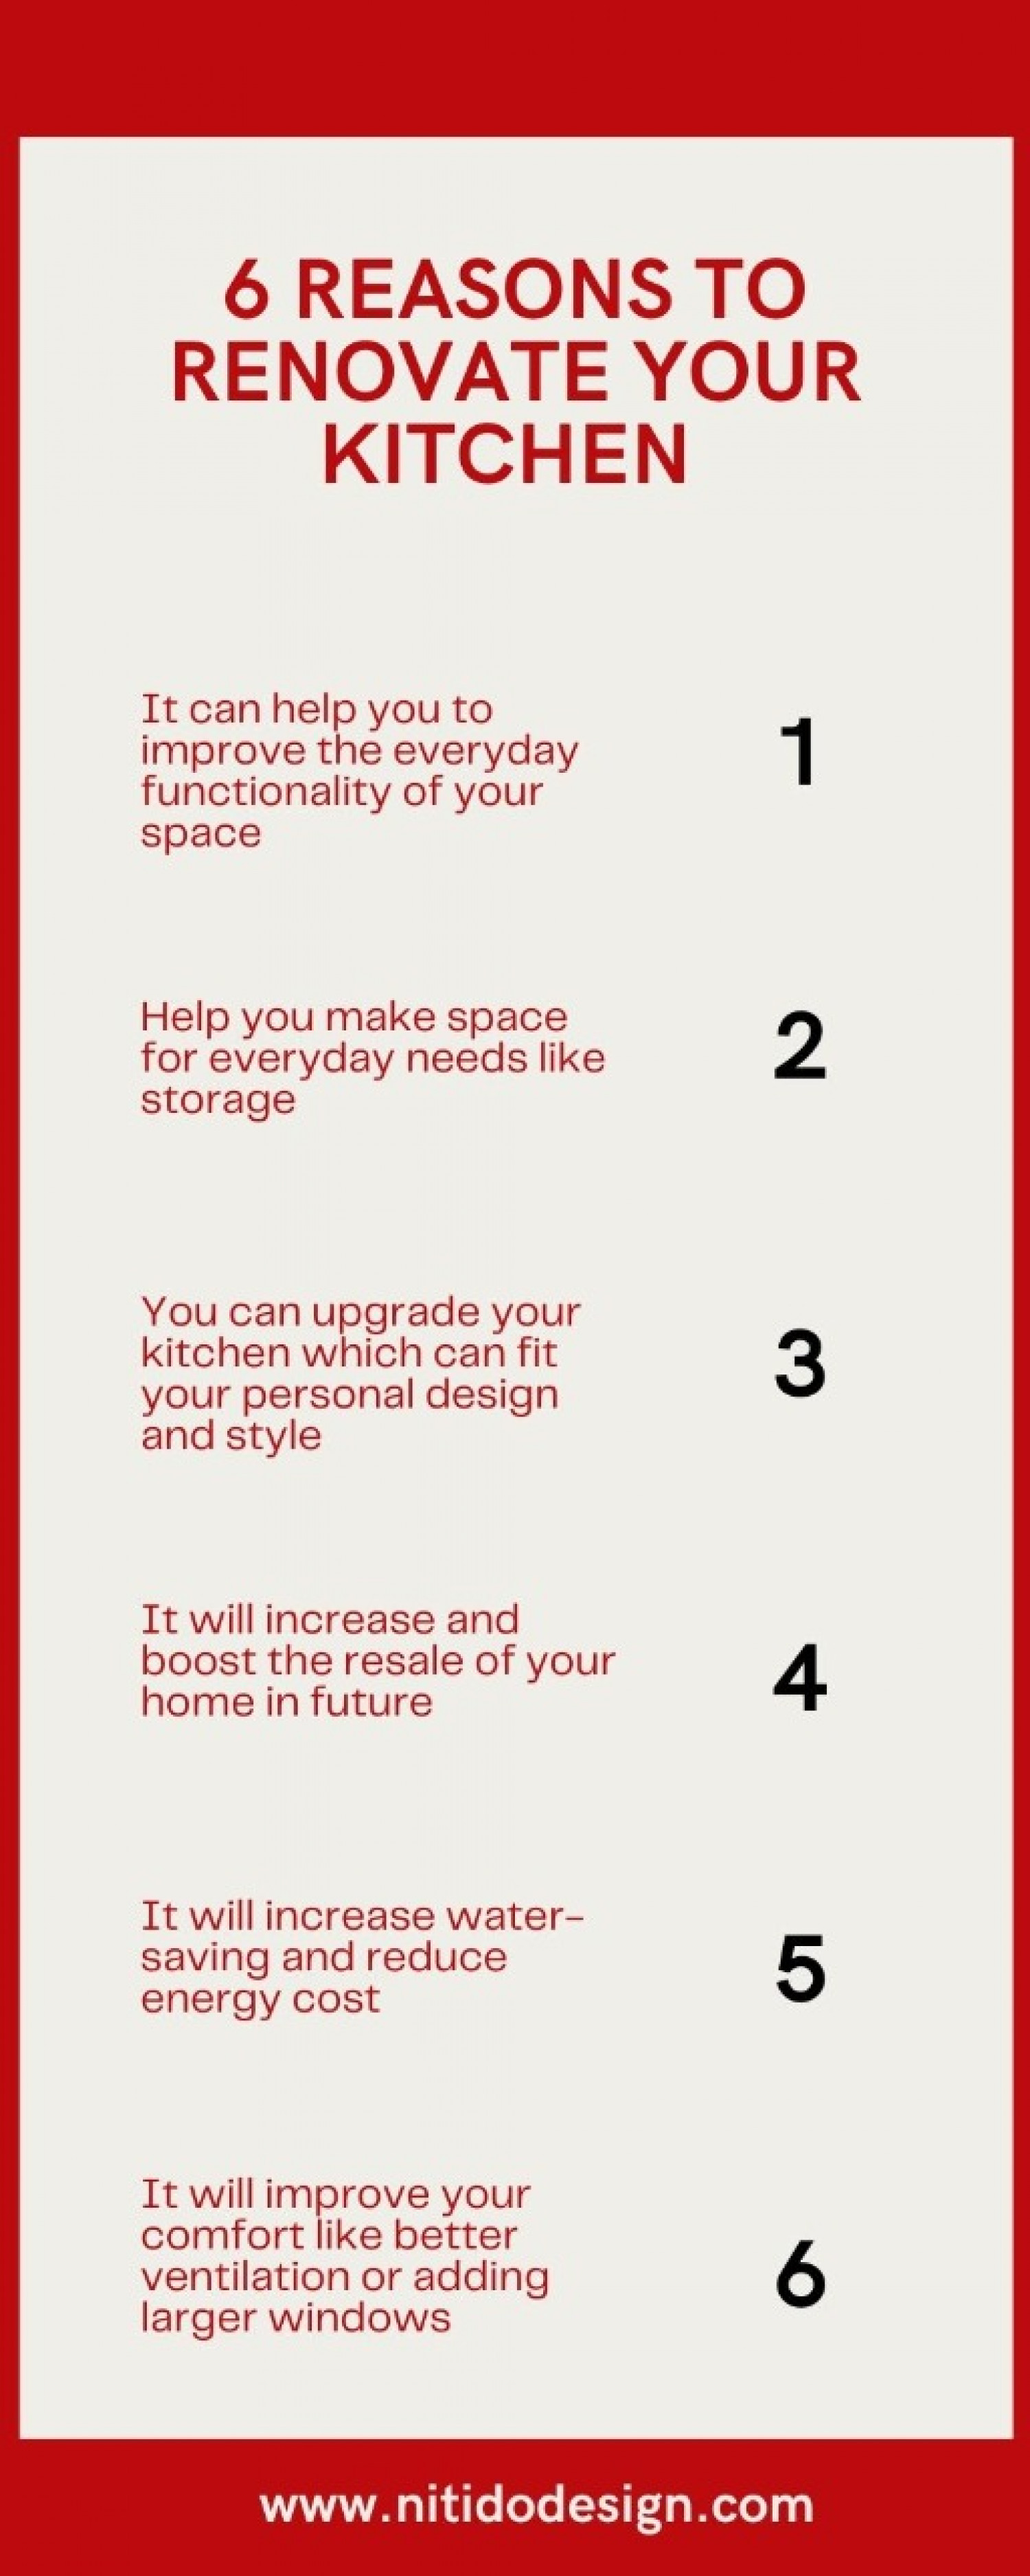 6 Reasons to Renovate your Kitchen Infographic